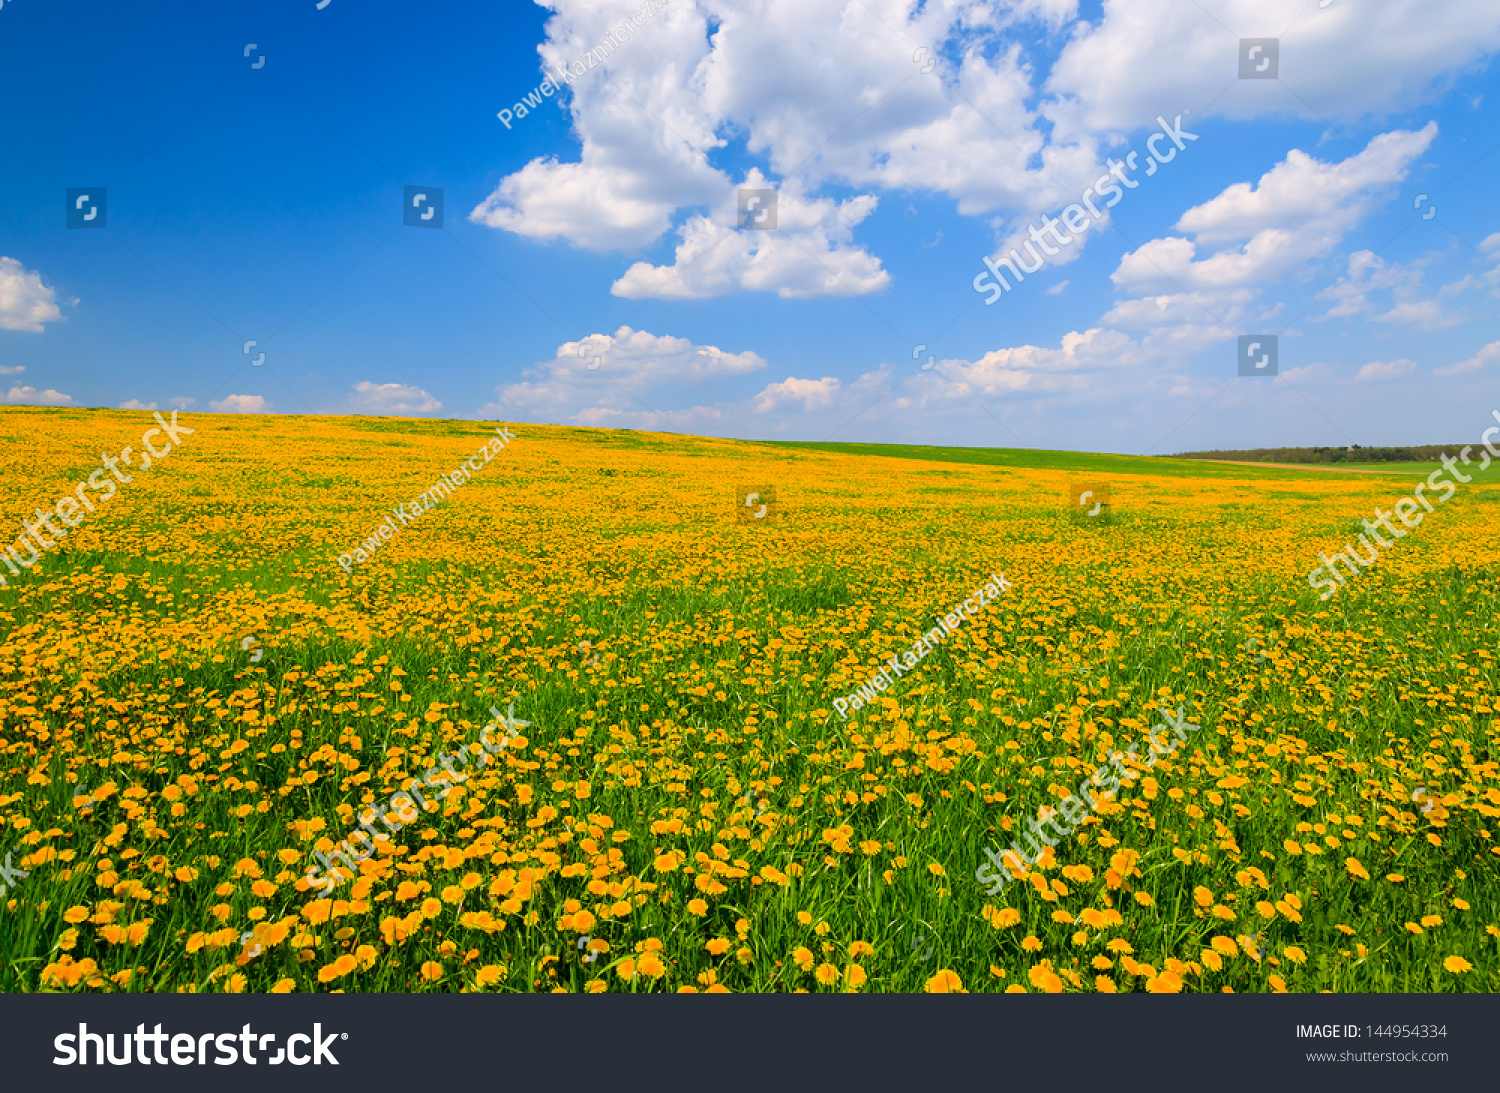 Yellow Flowers Field Rural Landscape White Stock Photo 100 Legal